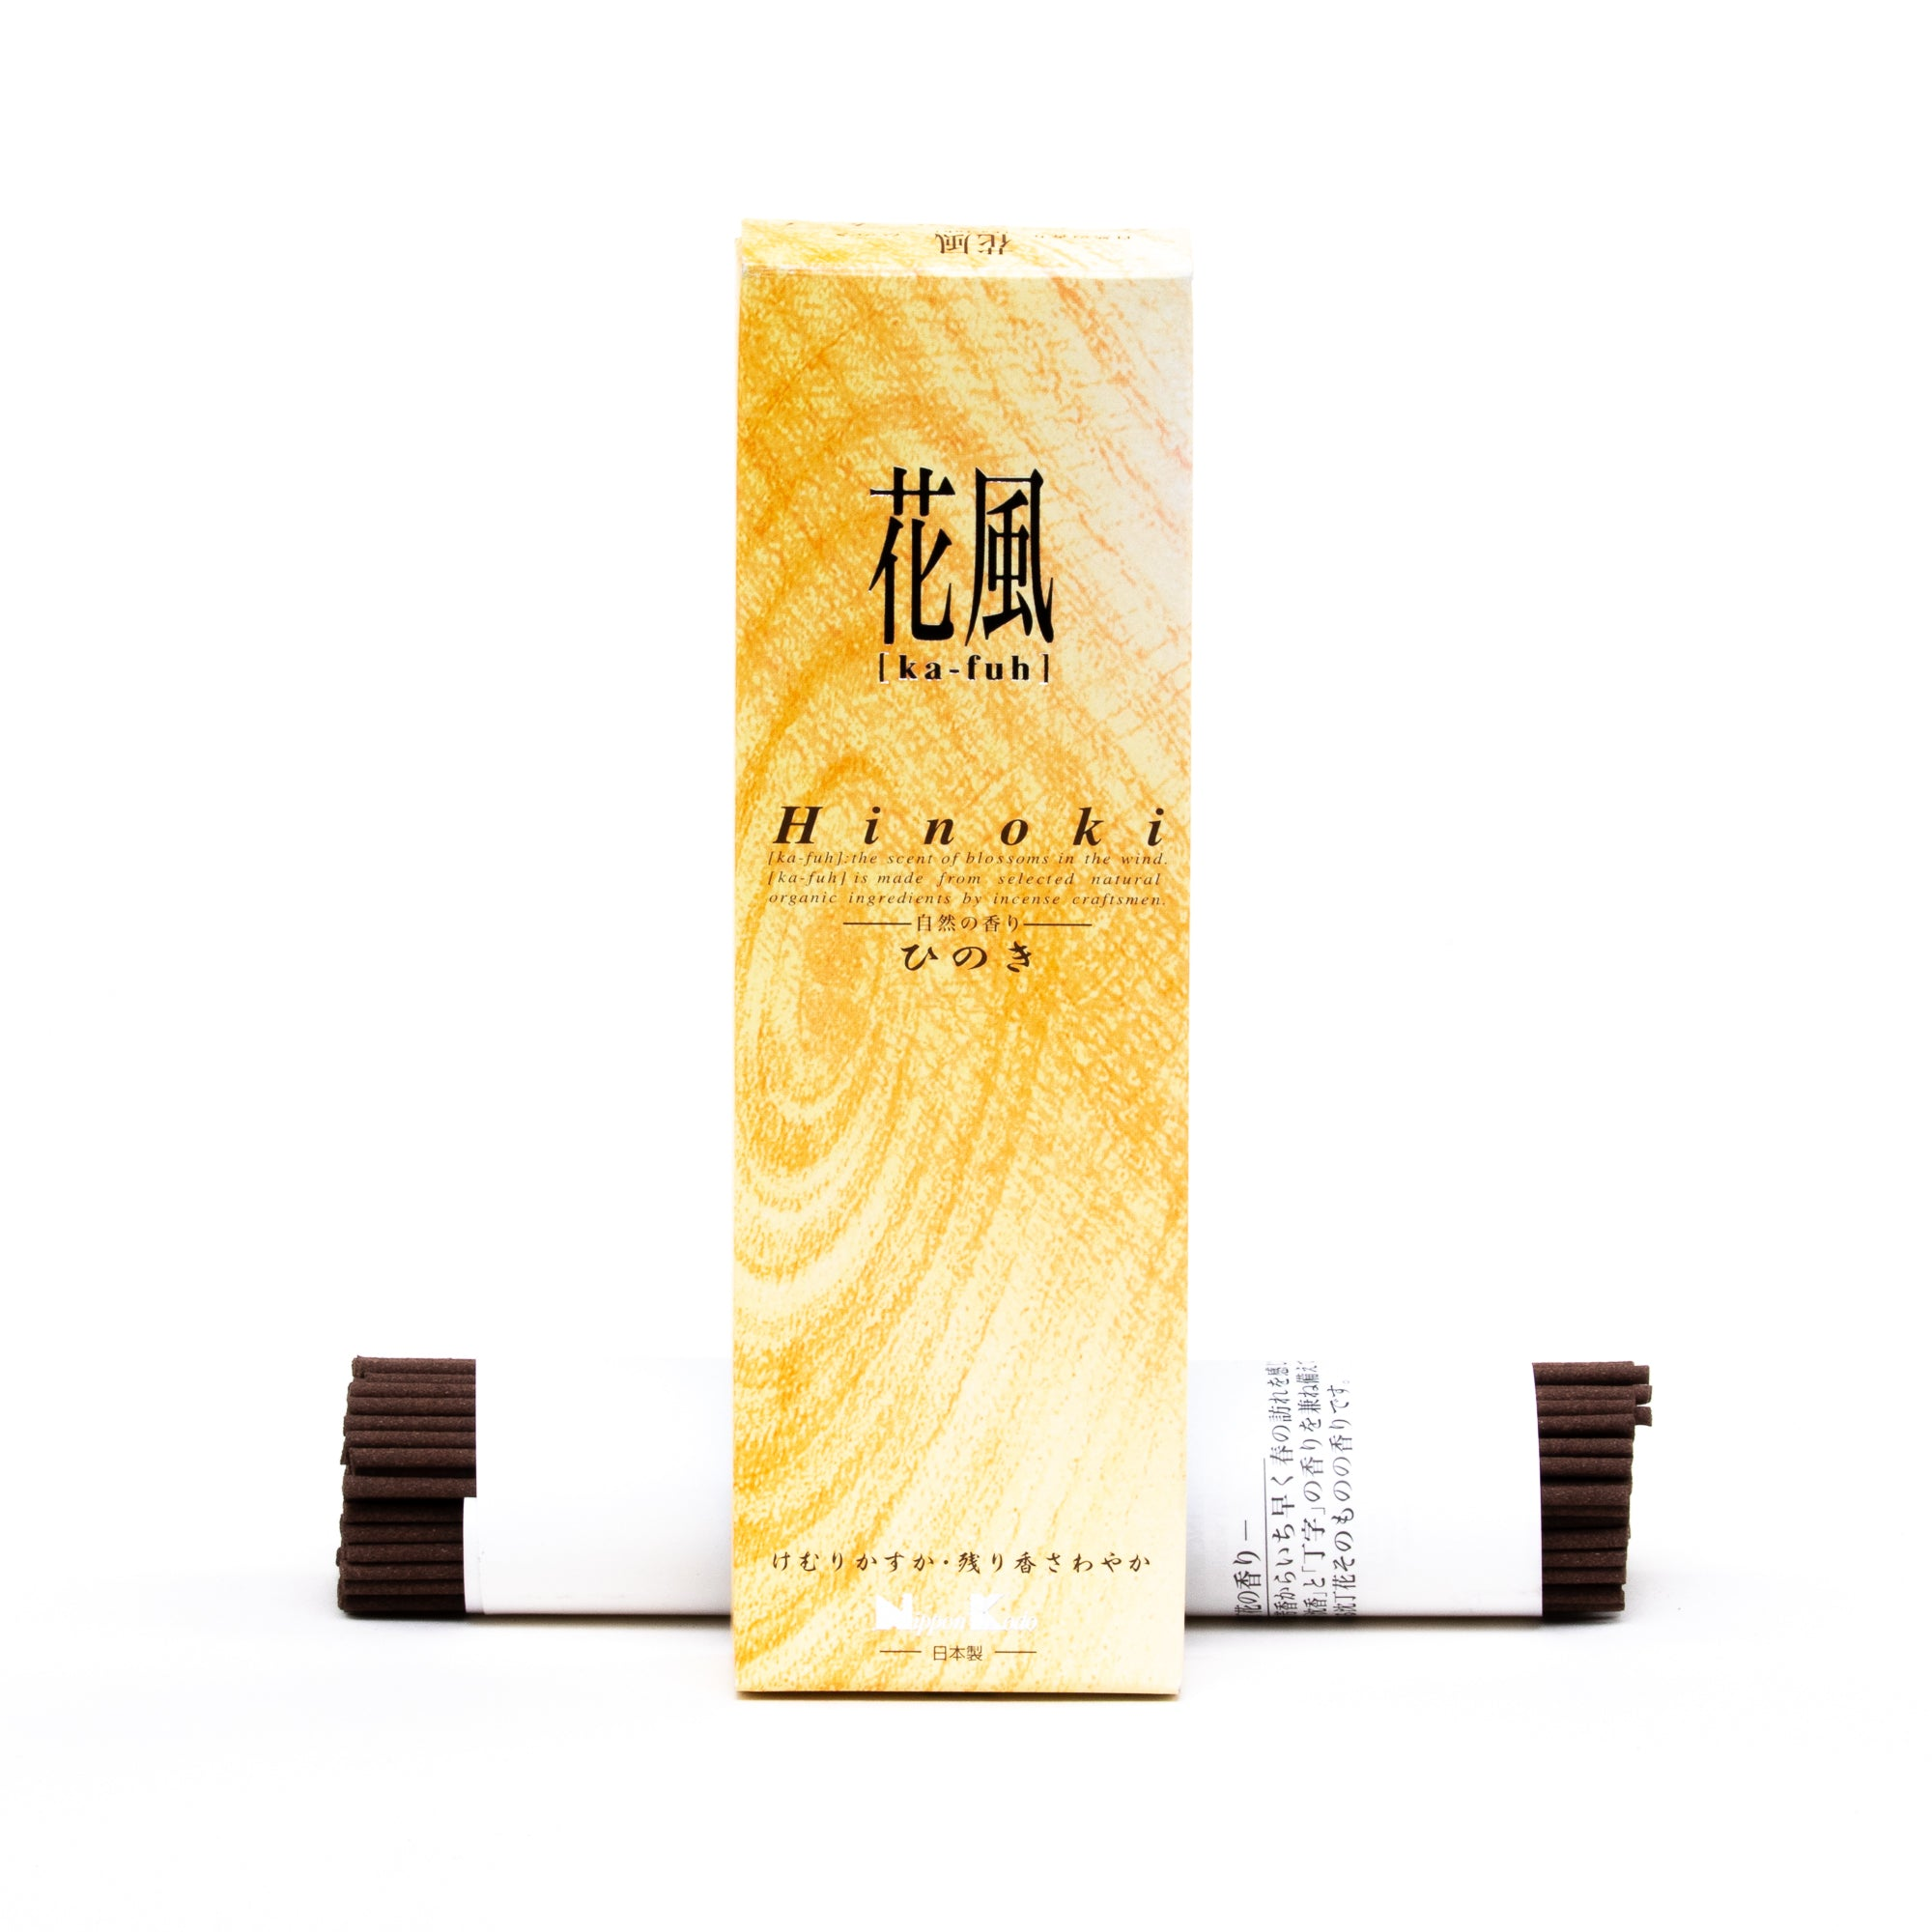 Ka-Fuh Hinoki (Japanese Cypress) Incense